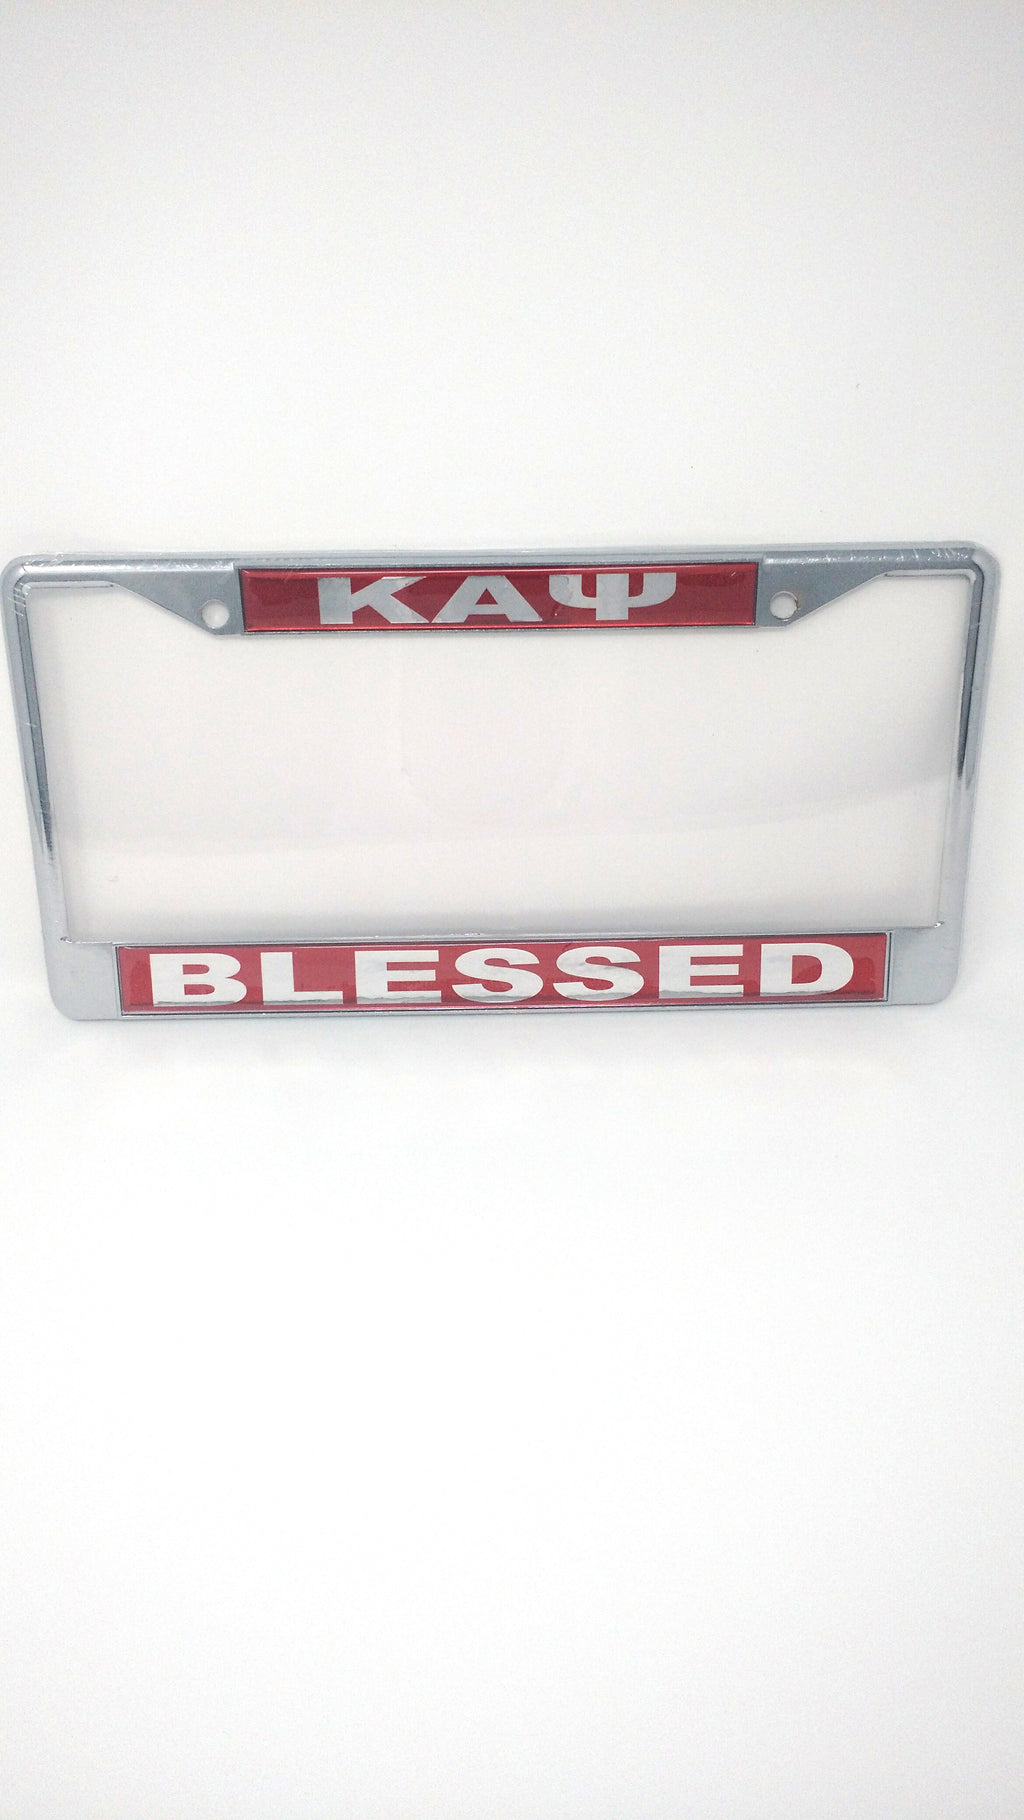 Kappa Alpha Psi Blessed License Plate Frame